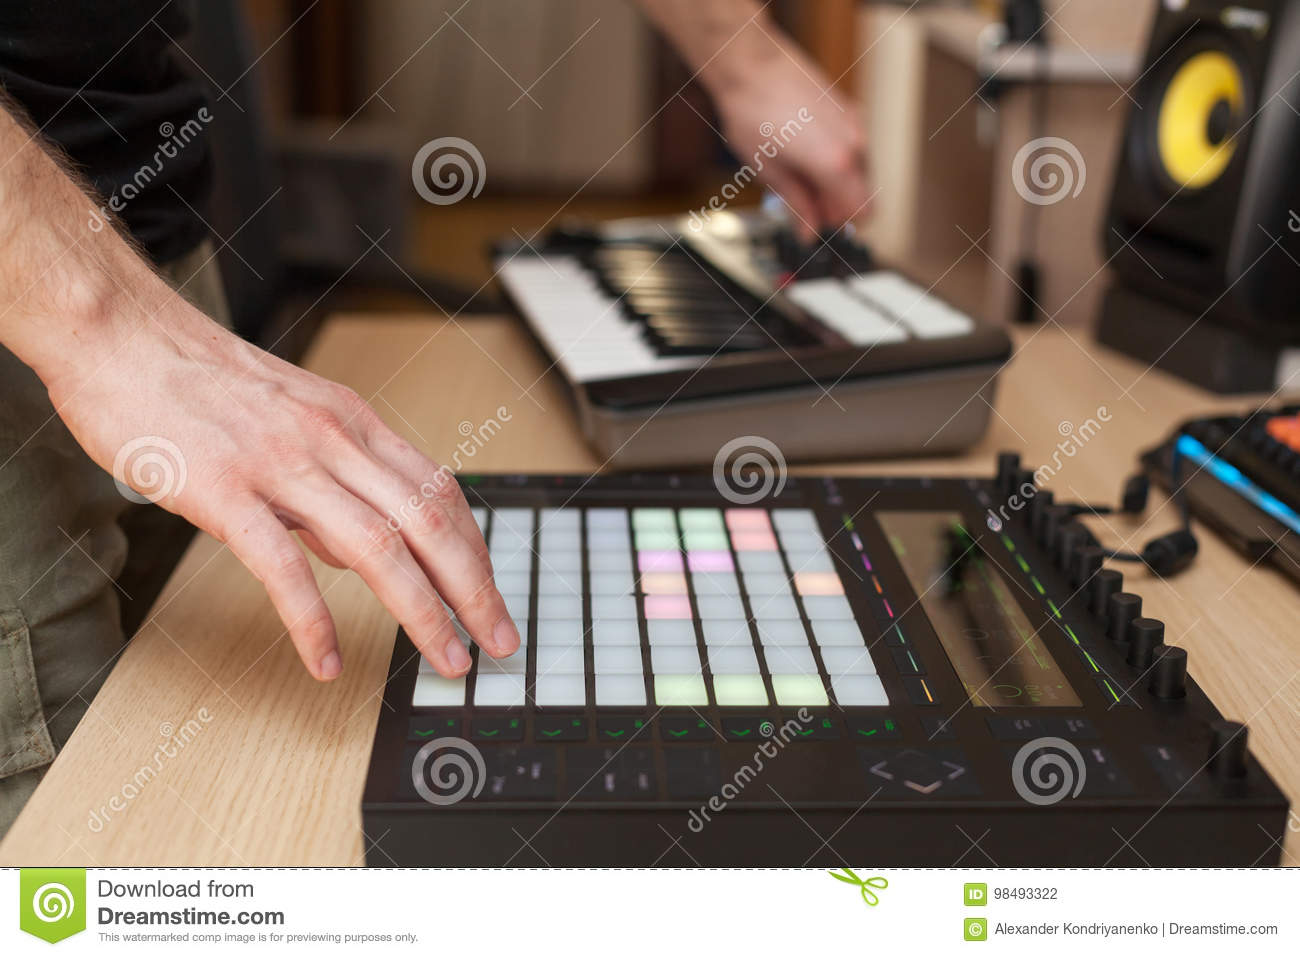 Producer makes a music on professional production controller with push button pads.